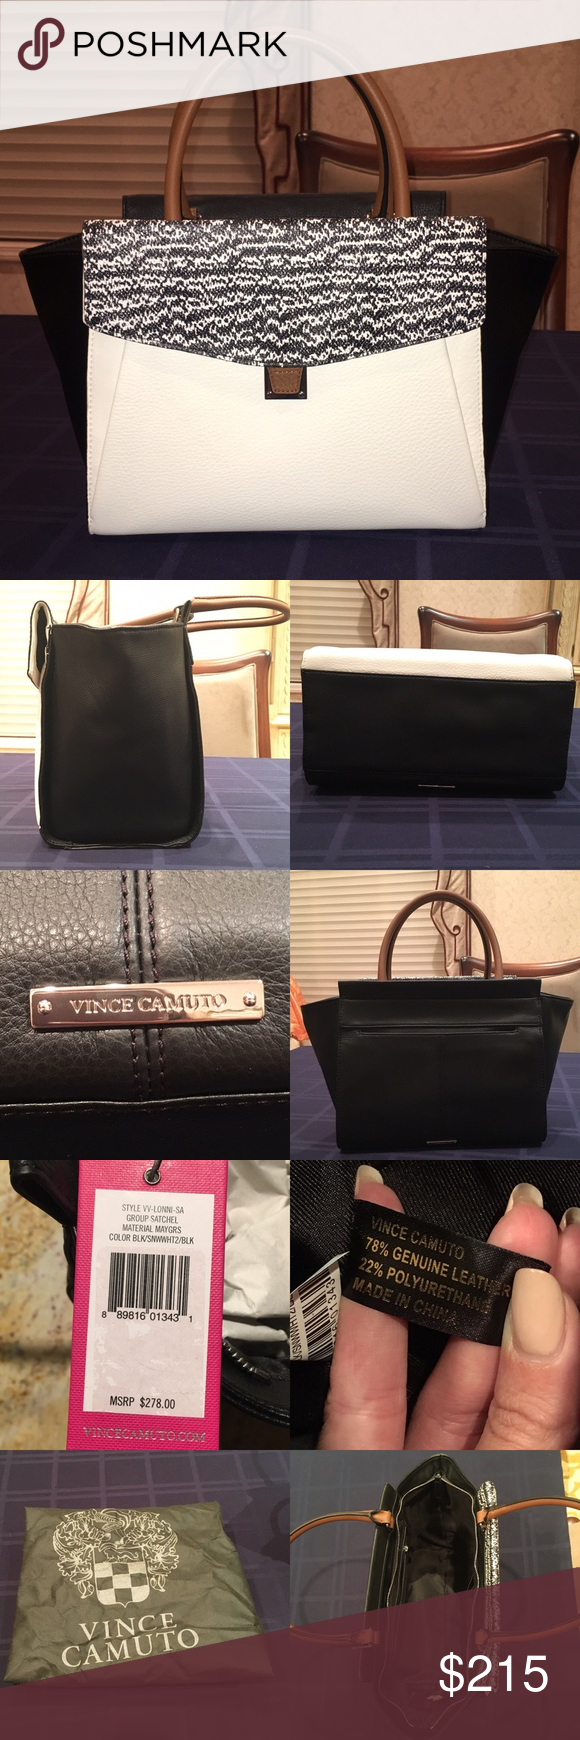 Vince Camuto Satchel Bag Brand new never used!! Includes dust bag and stuffing. Features a front and back pocket, inside pockets, and a zipper closure. Material is 78% genuine leather 22% polyurethane. No trades!! Feel free to ask questions :) Vince Camuto Bags Satchels